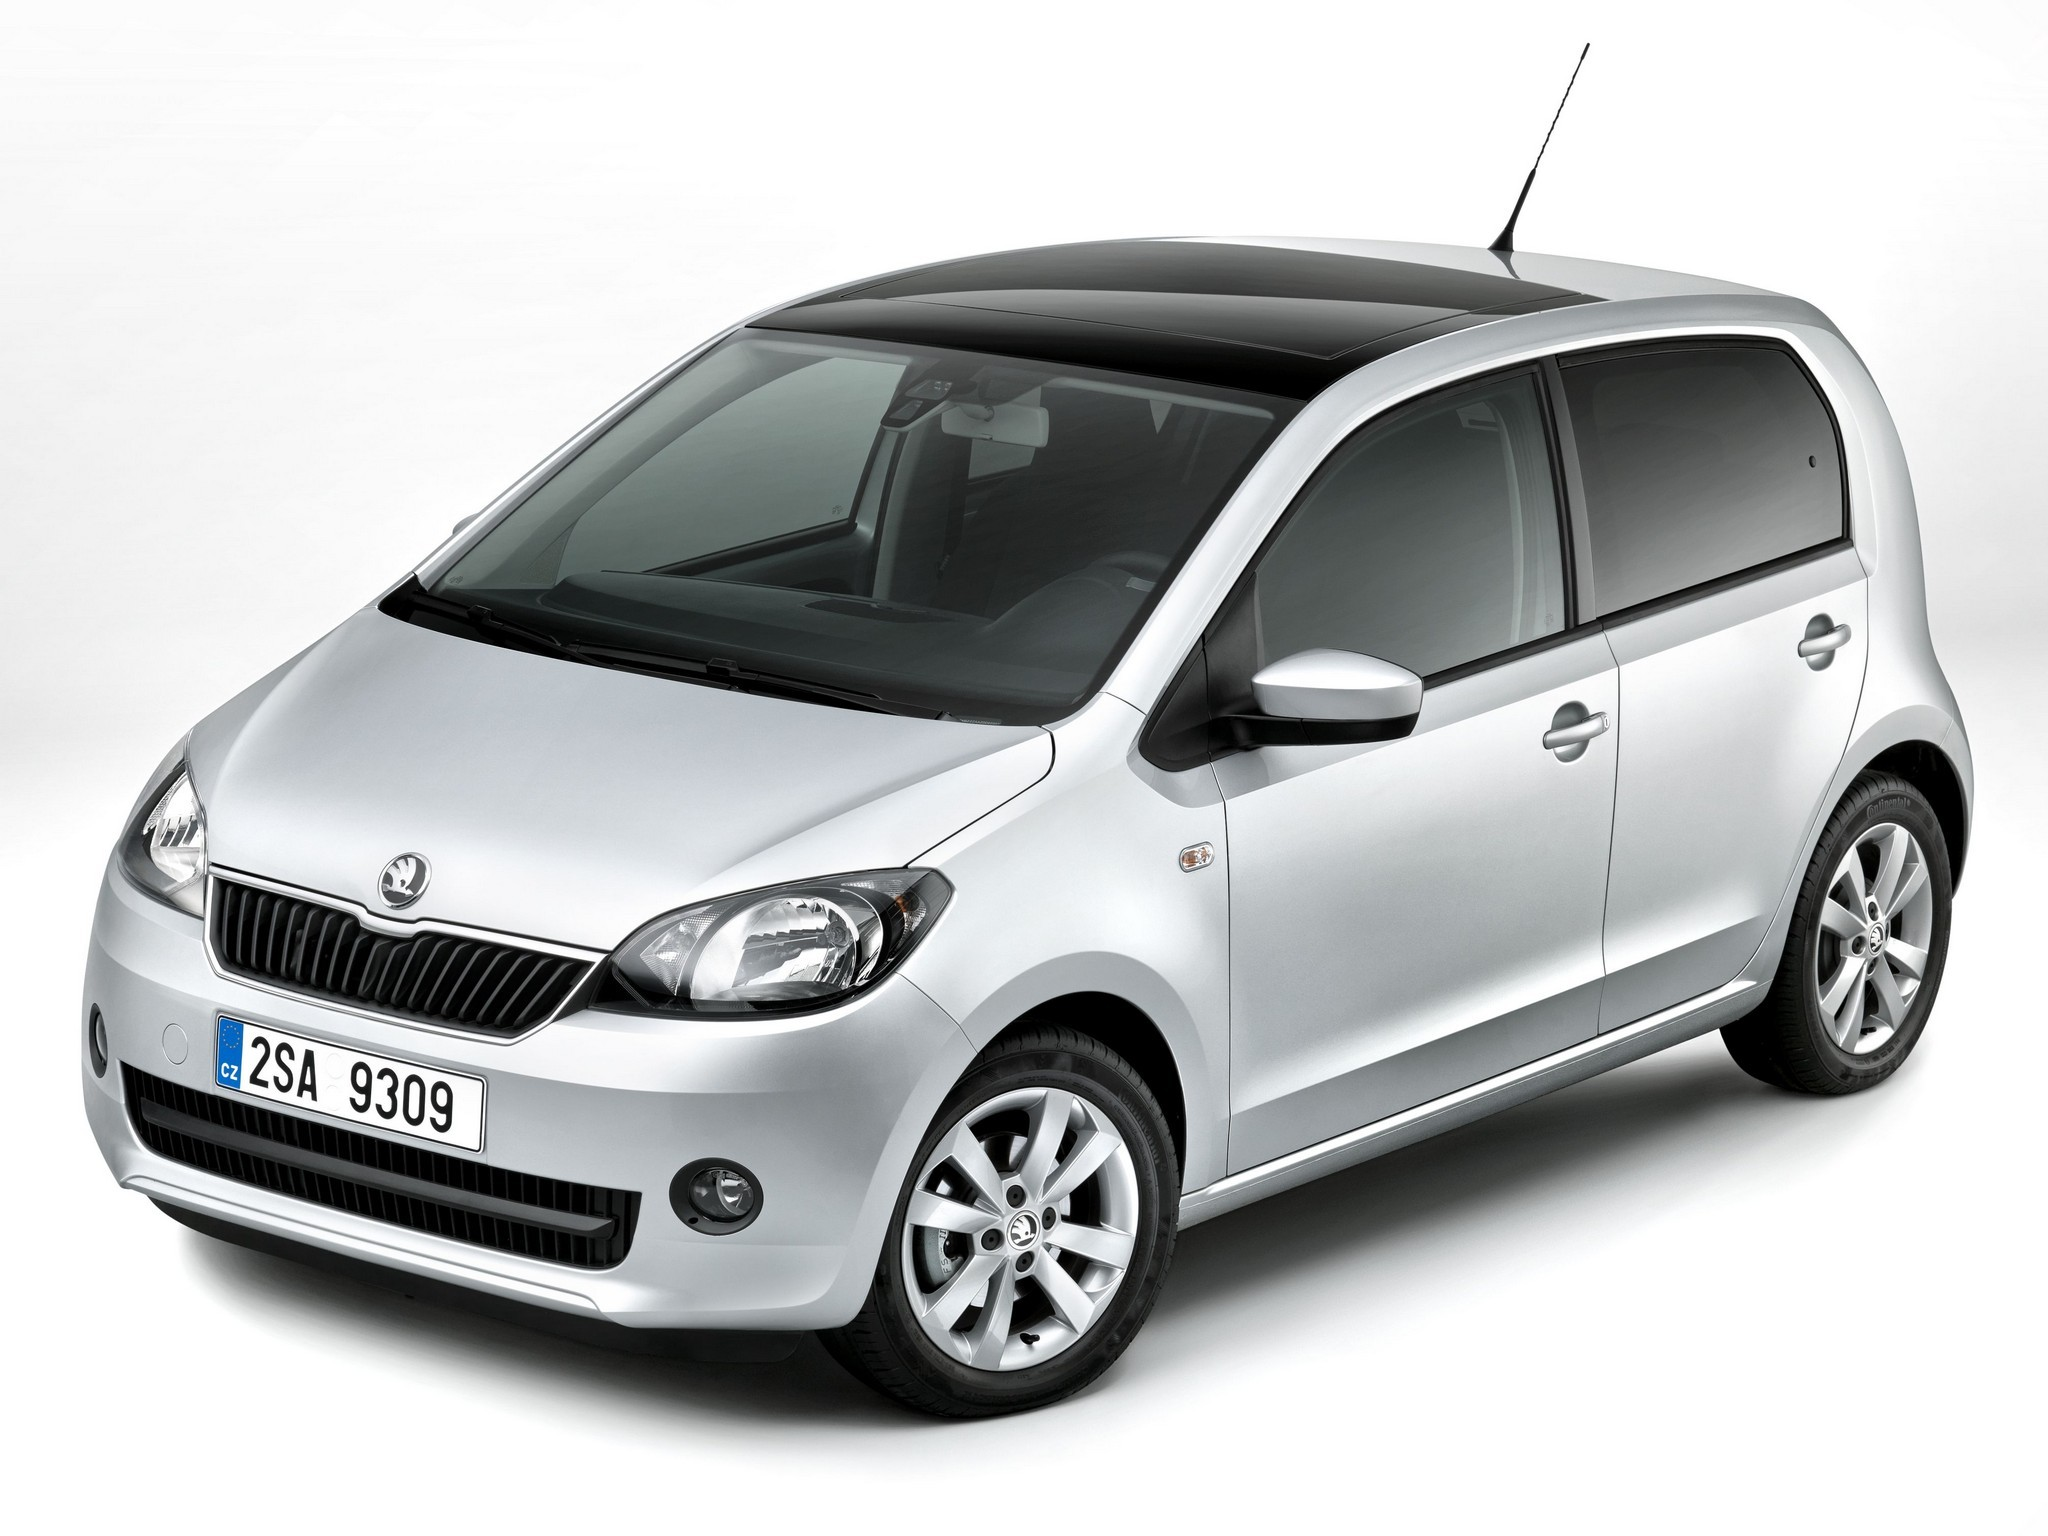 skoda citigo 5 doors specs 2012 2013 2014 2015 2016 2017 autoevolution. Black Bedroom Furniture Sets. Home Design Ideas